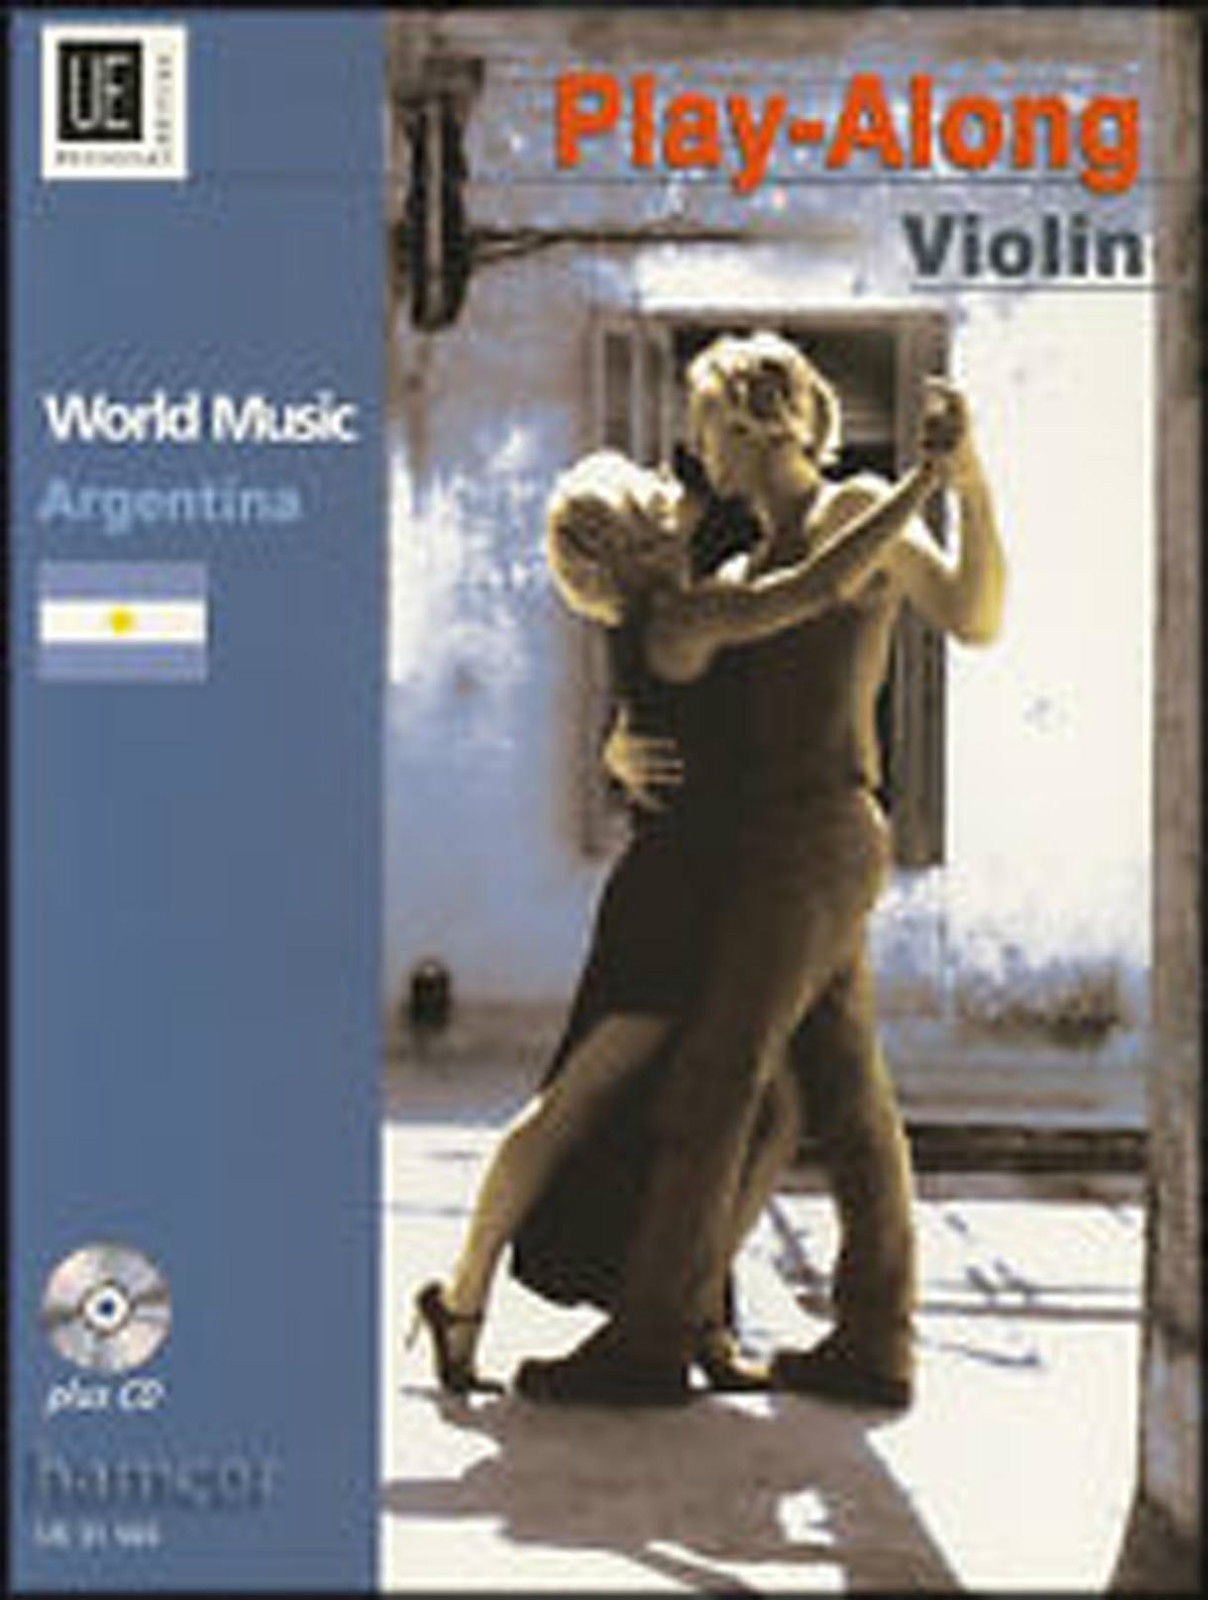 World Music Argentina Play-Along Violin Tango Waltz Zamba Book CD Collatti B28